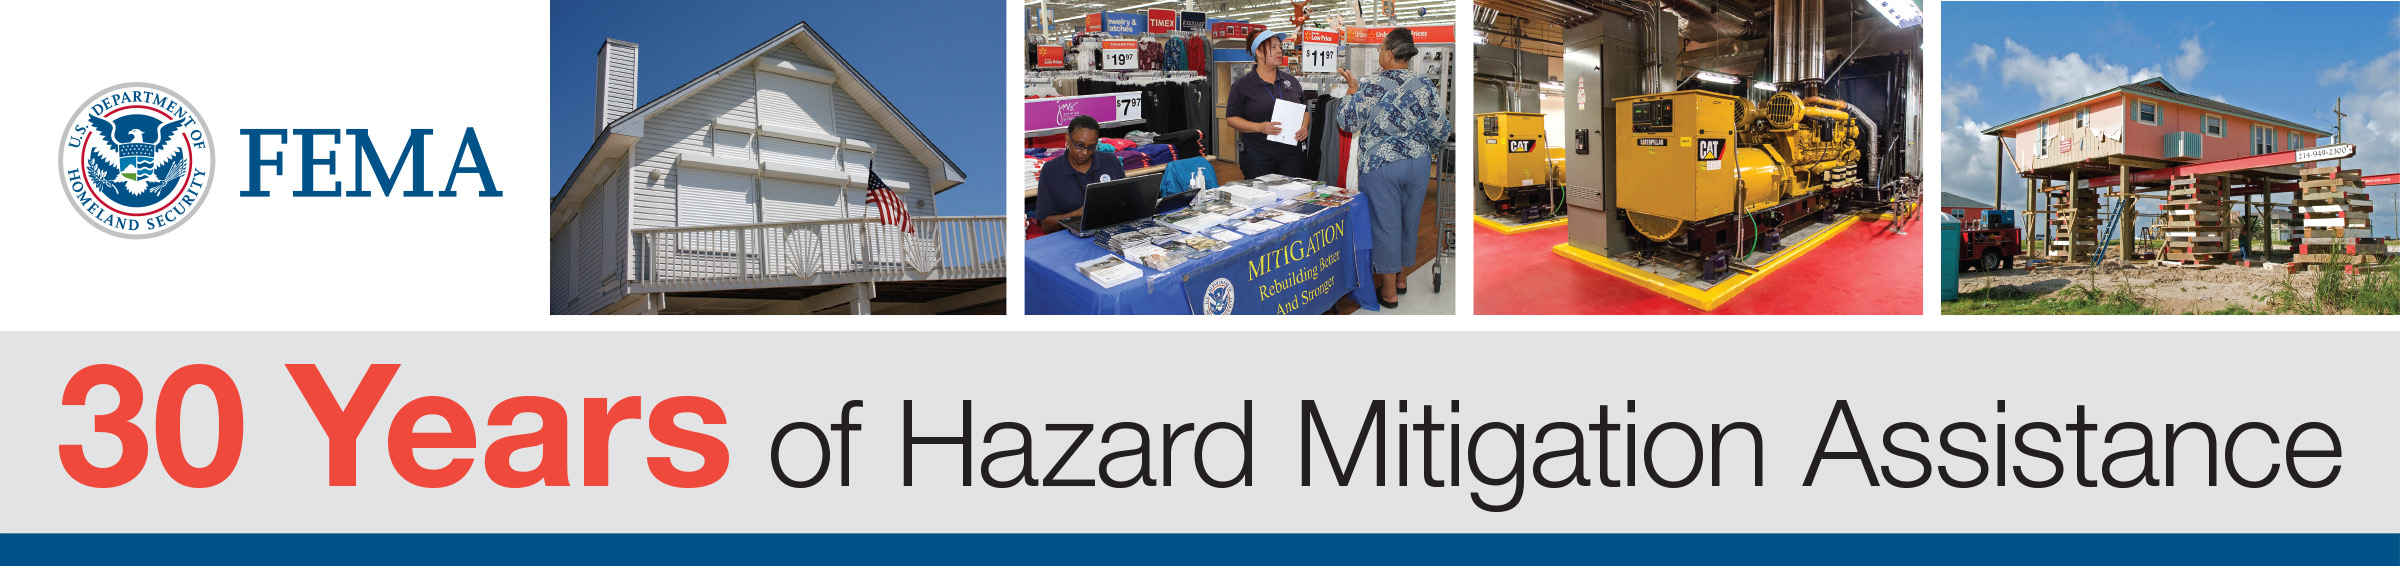 30 Years of Hazard Mitigation Assistance